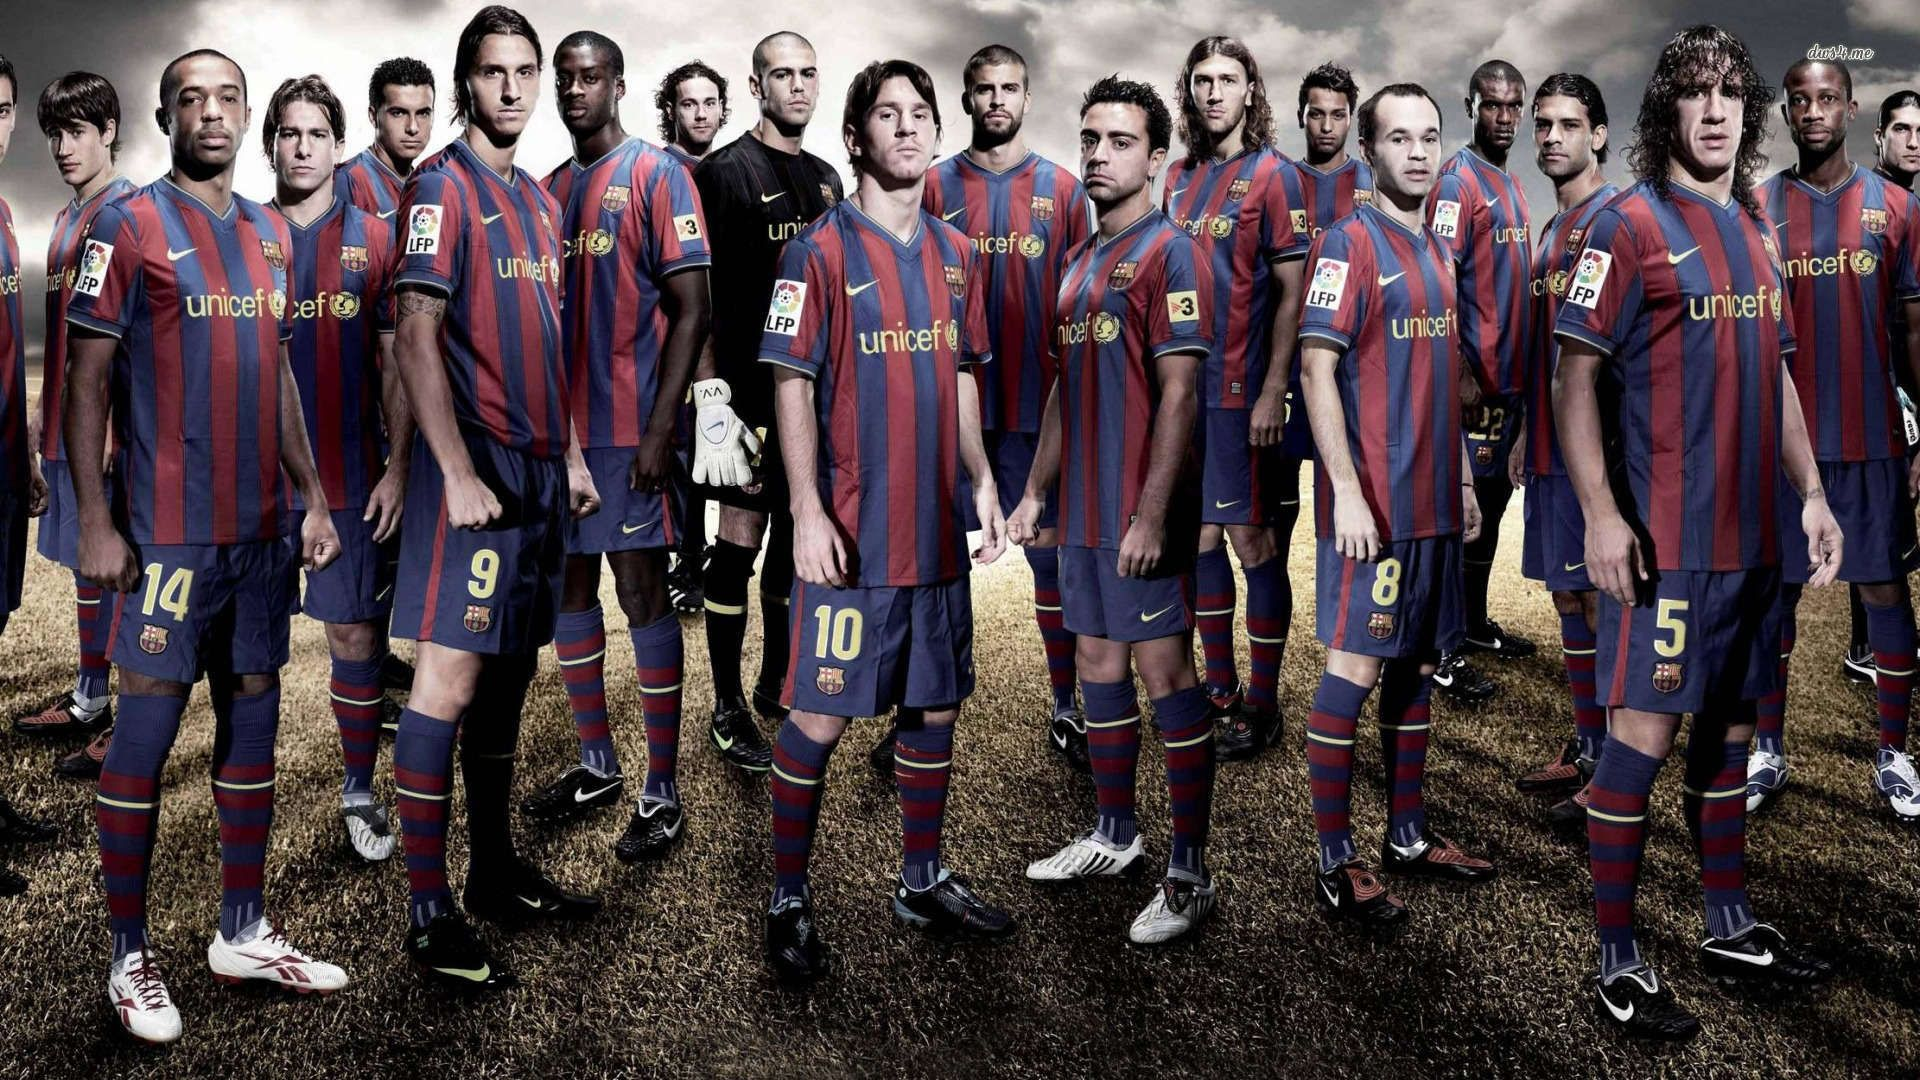 FC Barcelona 13 14 Home Away Kits Released Third Kit Info